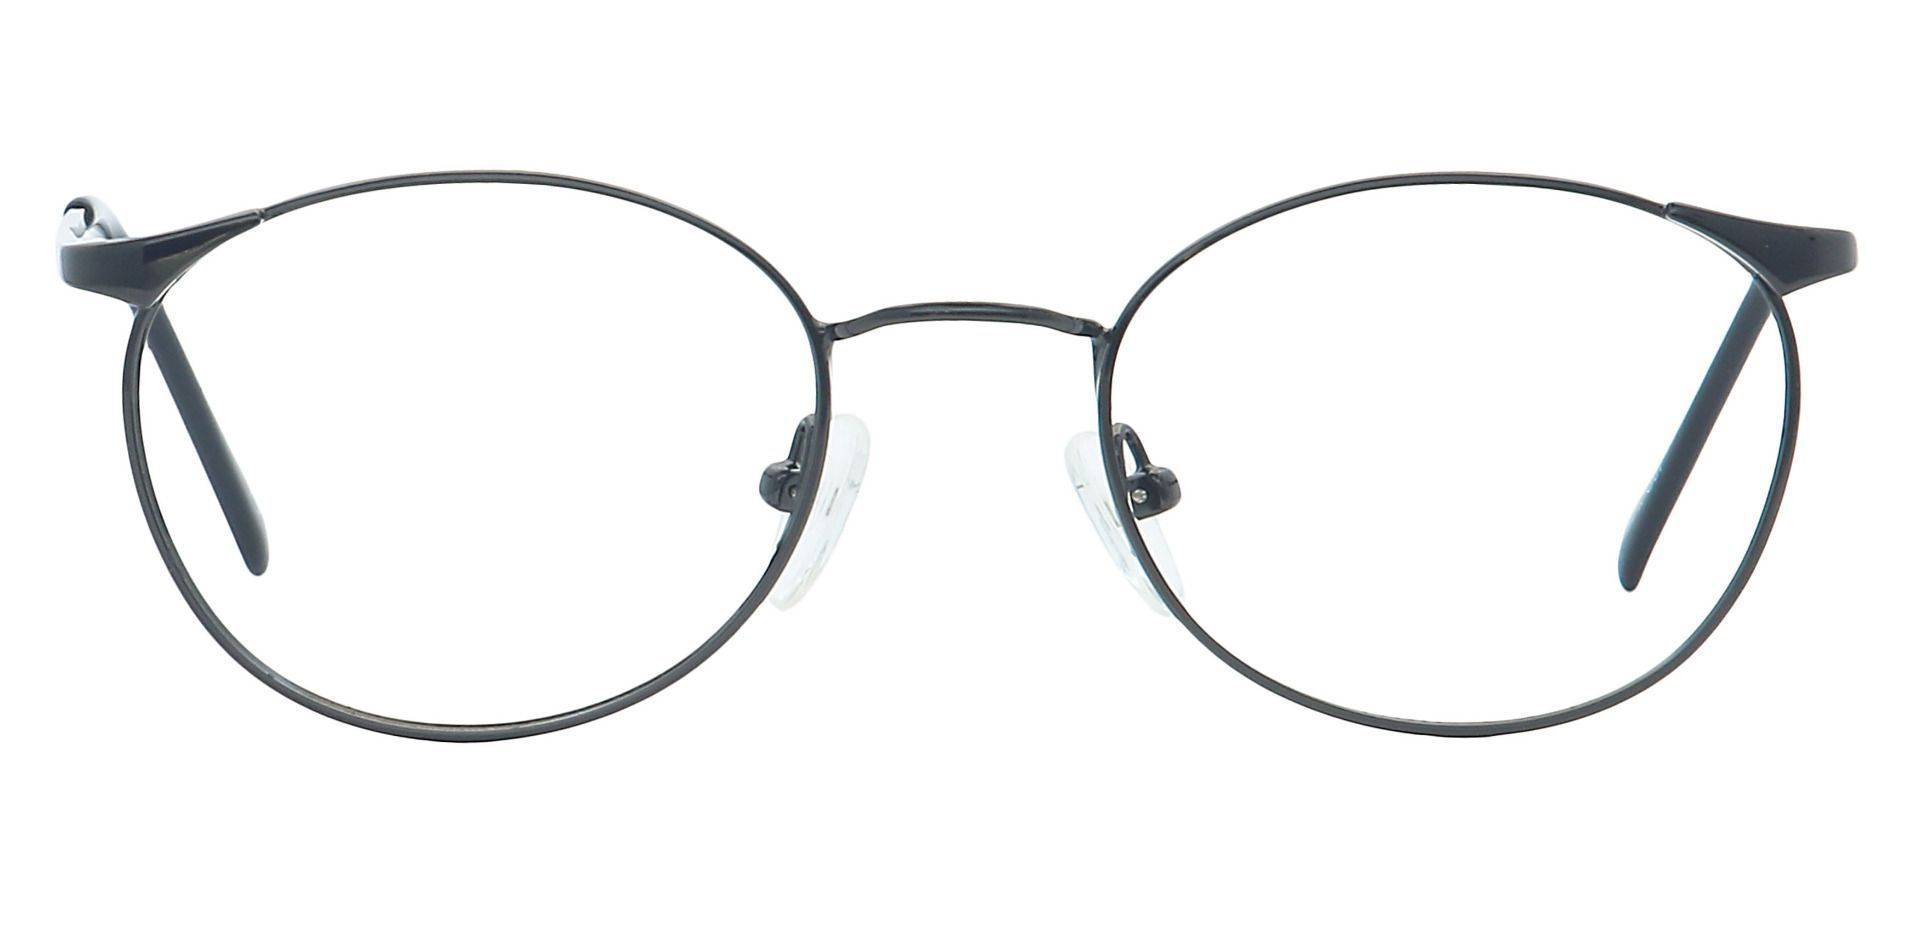 Collen Round Non-Rx Glasses - Gray